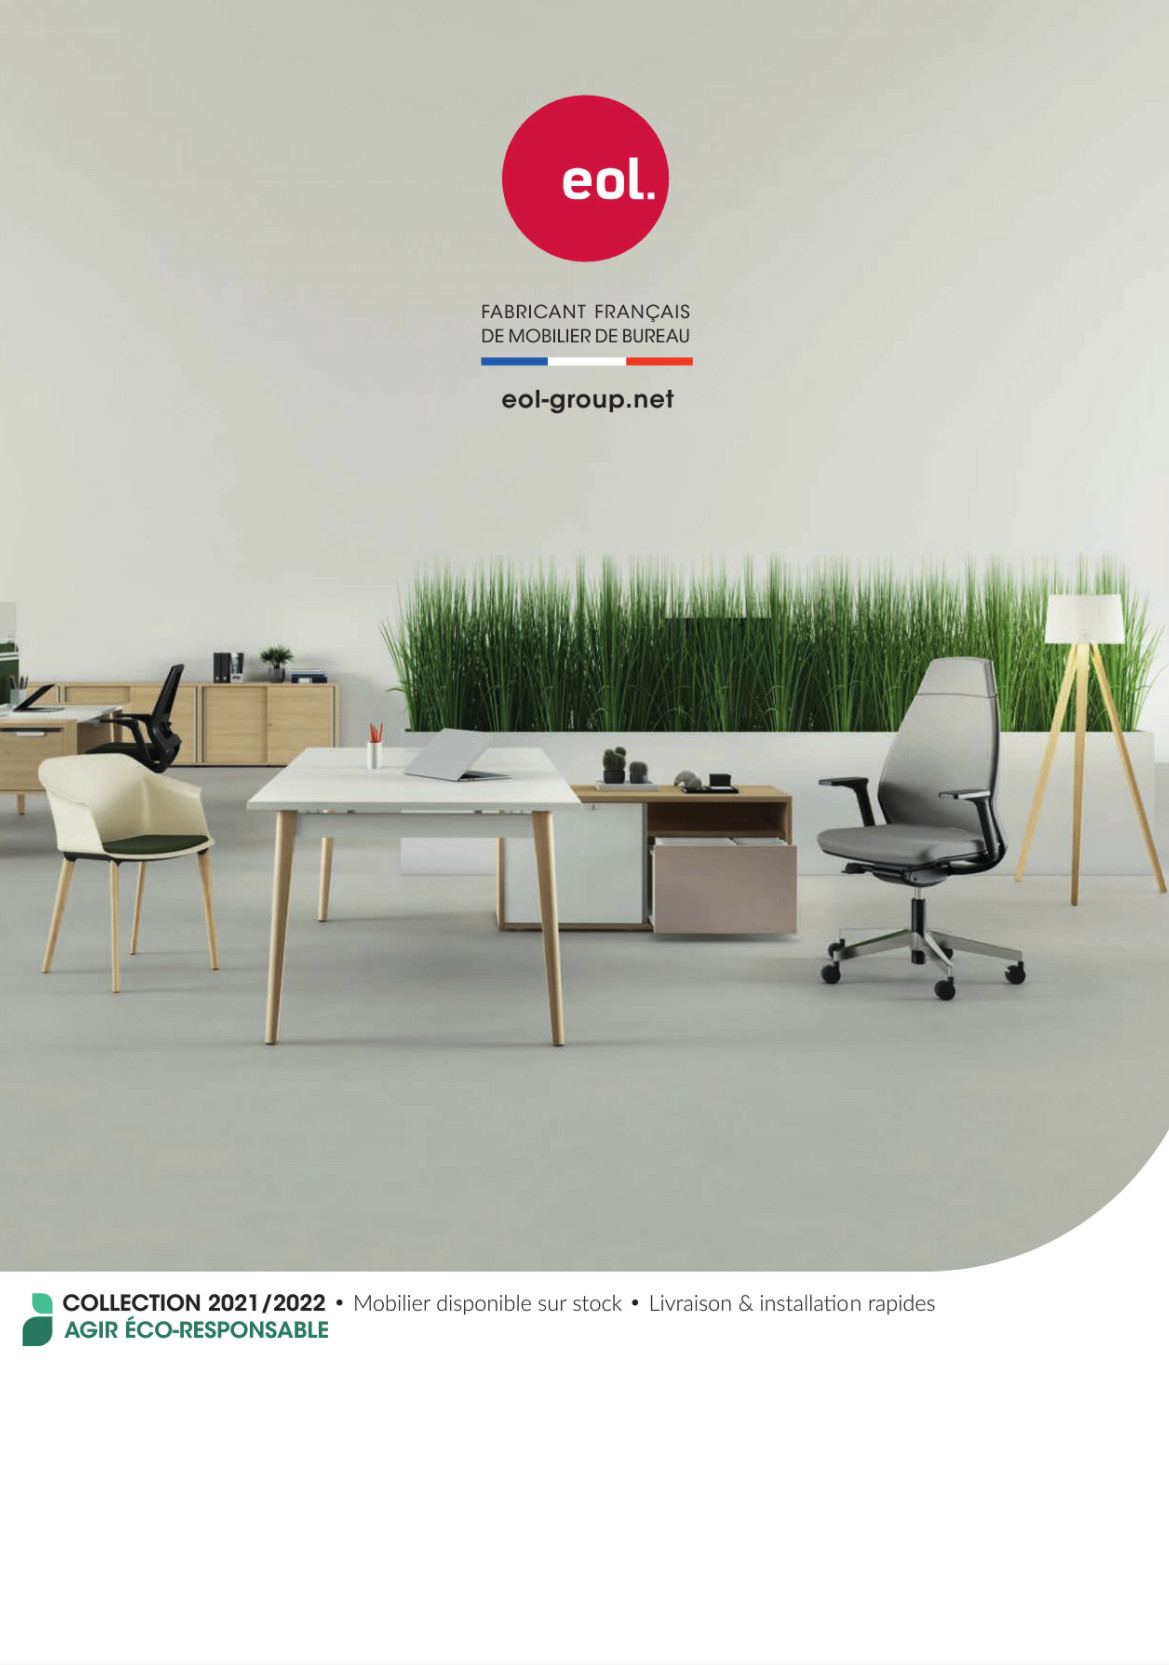 eol mobilier cherbourg